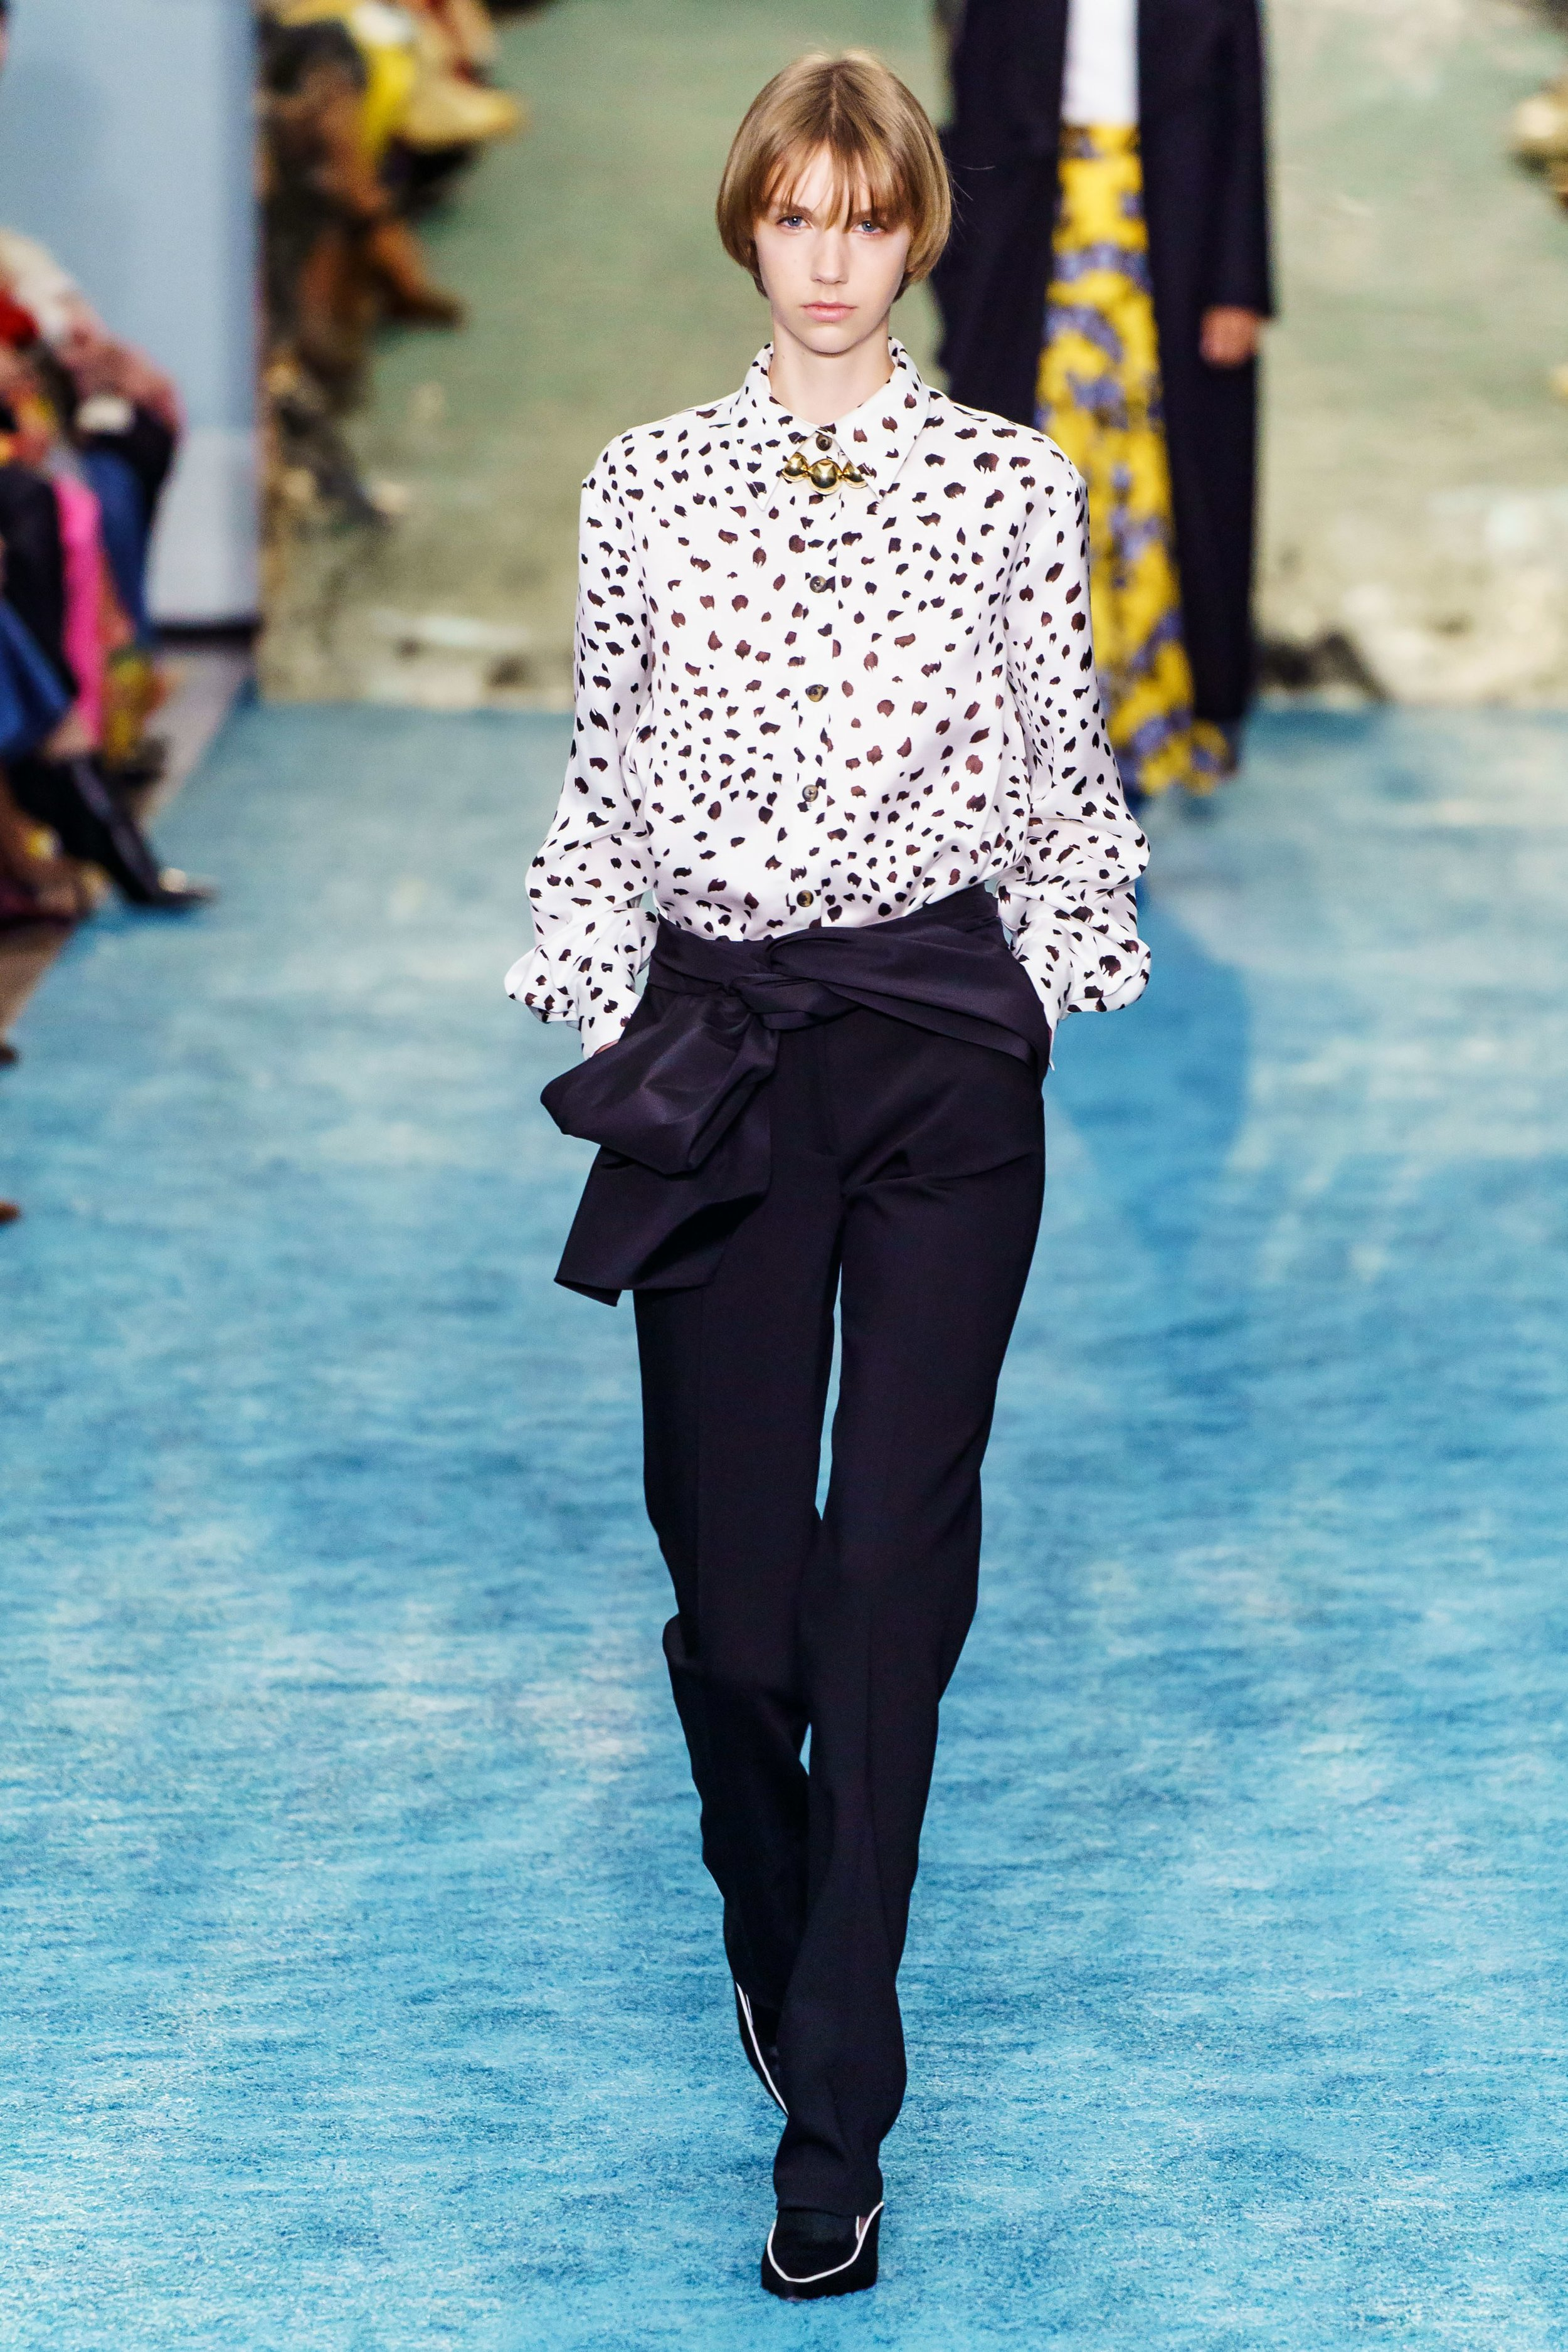 CAROLINA HERRERA, COURTESY VOGUE RUNWAY